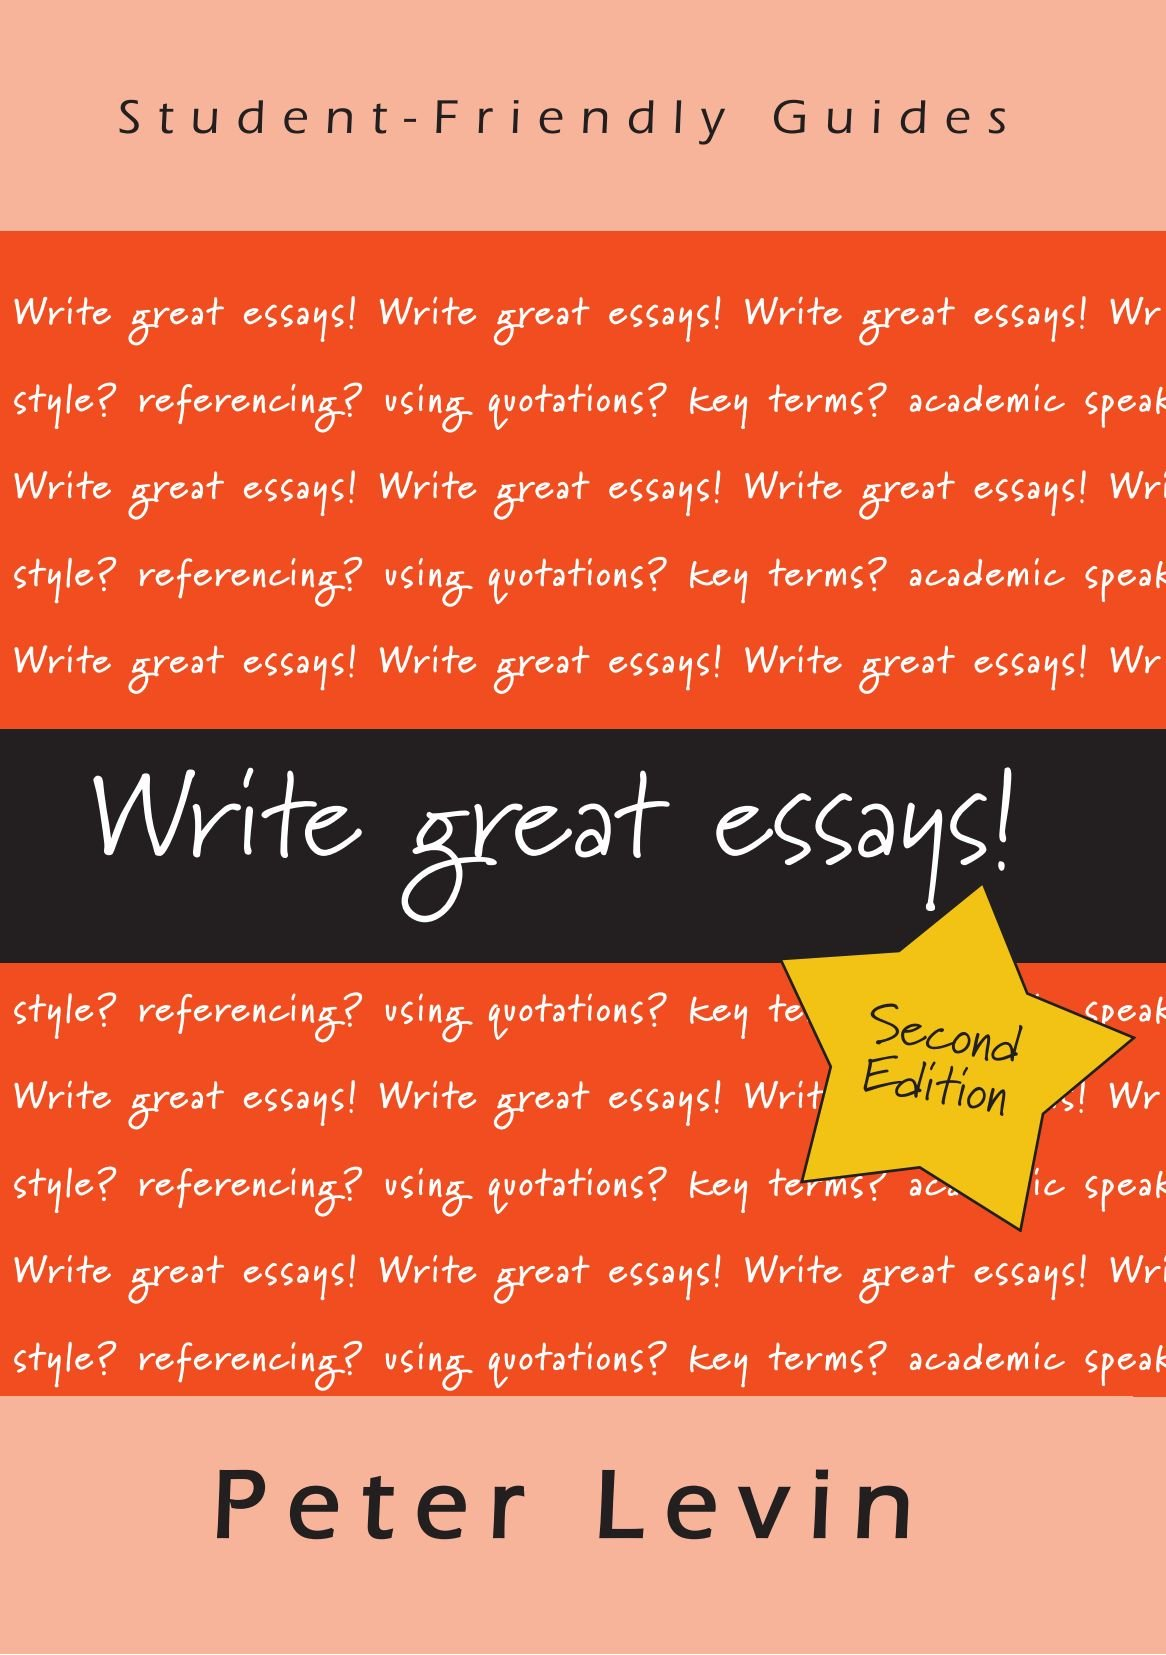 bryan greetham essay This essay plan helps you structure an essay to cover all the points you need how to write better essays (palgrave study skills) bryan greetham $3000 buy this.